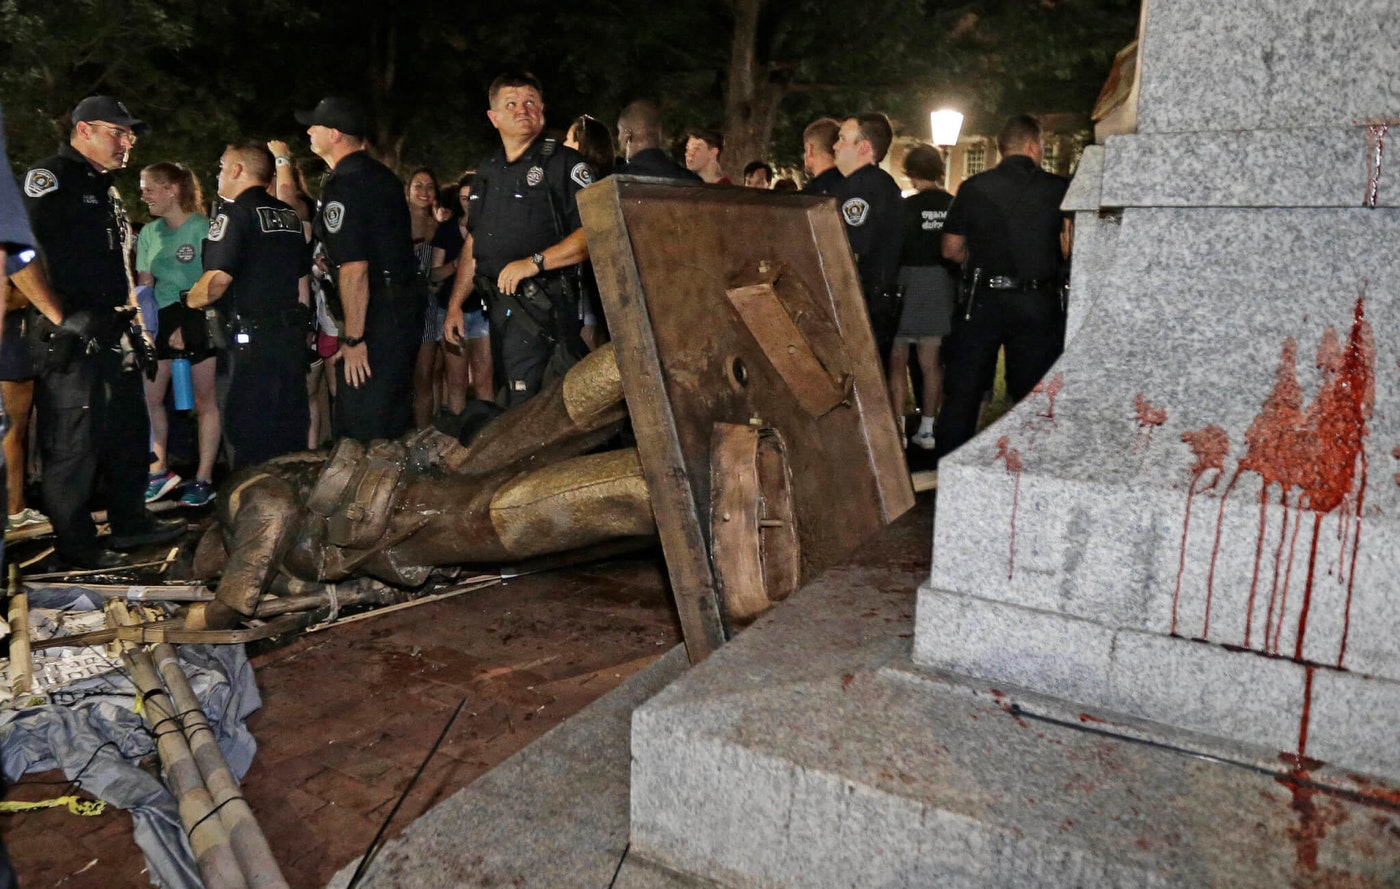 Police stand guard after the confederate statue known as Silent Sam was toppled in Aug. 2018 by protesters on campus at the University of North Carolina in Chapel Hill, N.C.  (File photo by AP Photo/Gerry Broome, File)